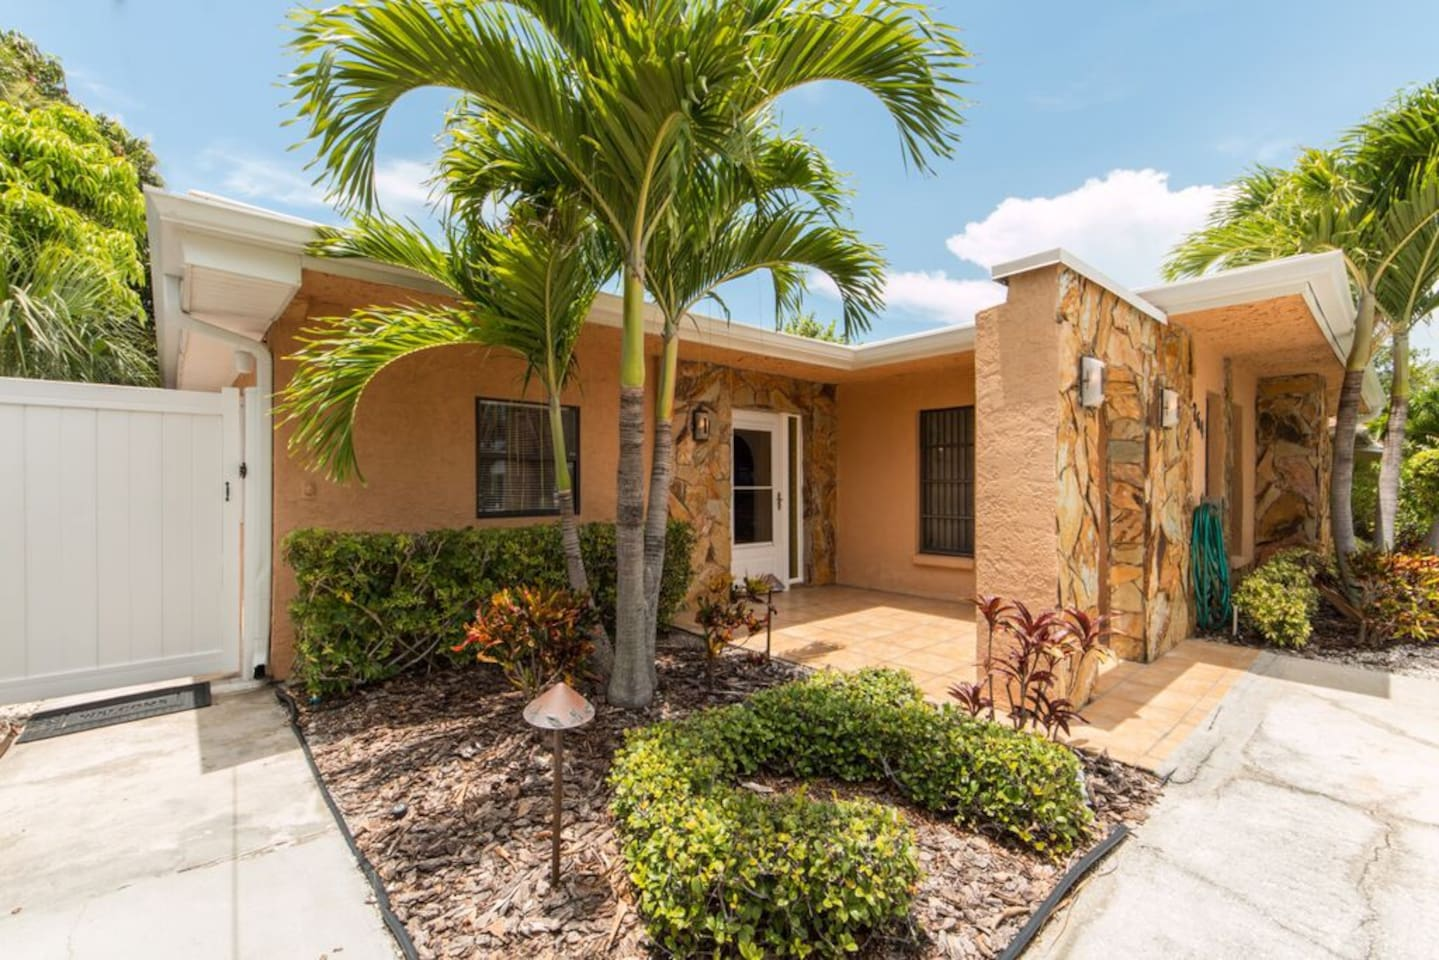 764 Mandalay Ave, Clearwater Beach. In-law apt